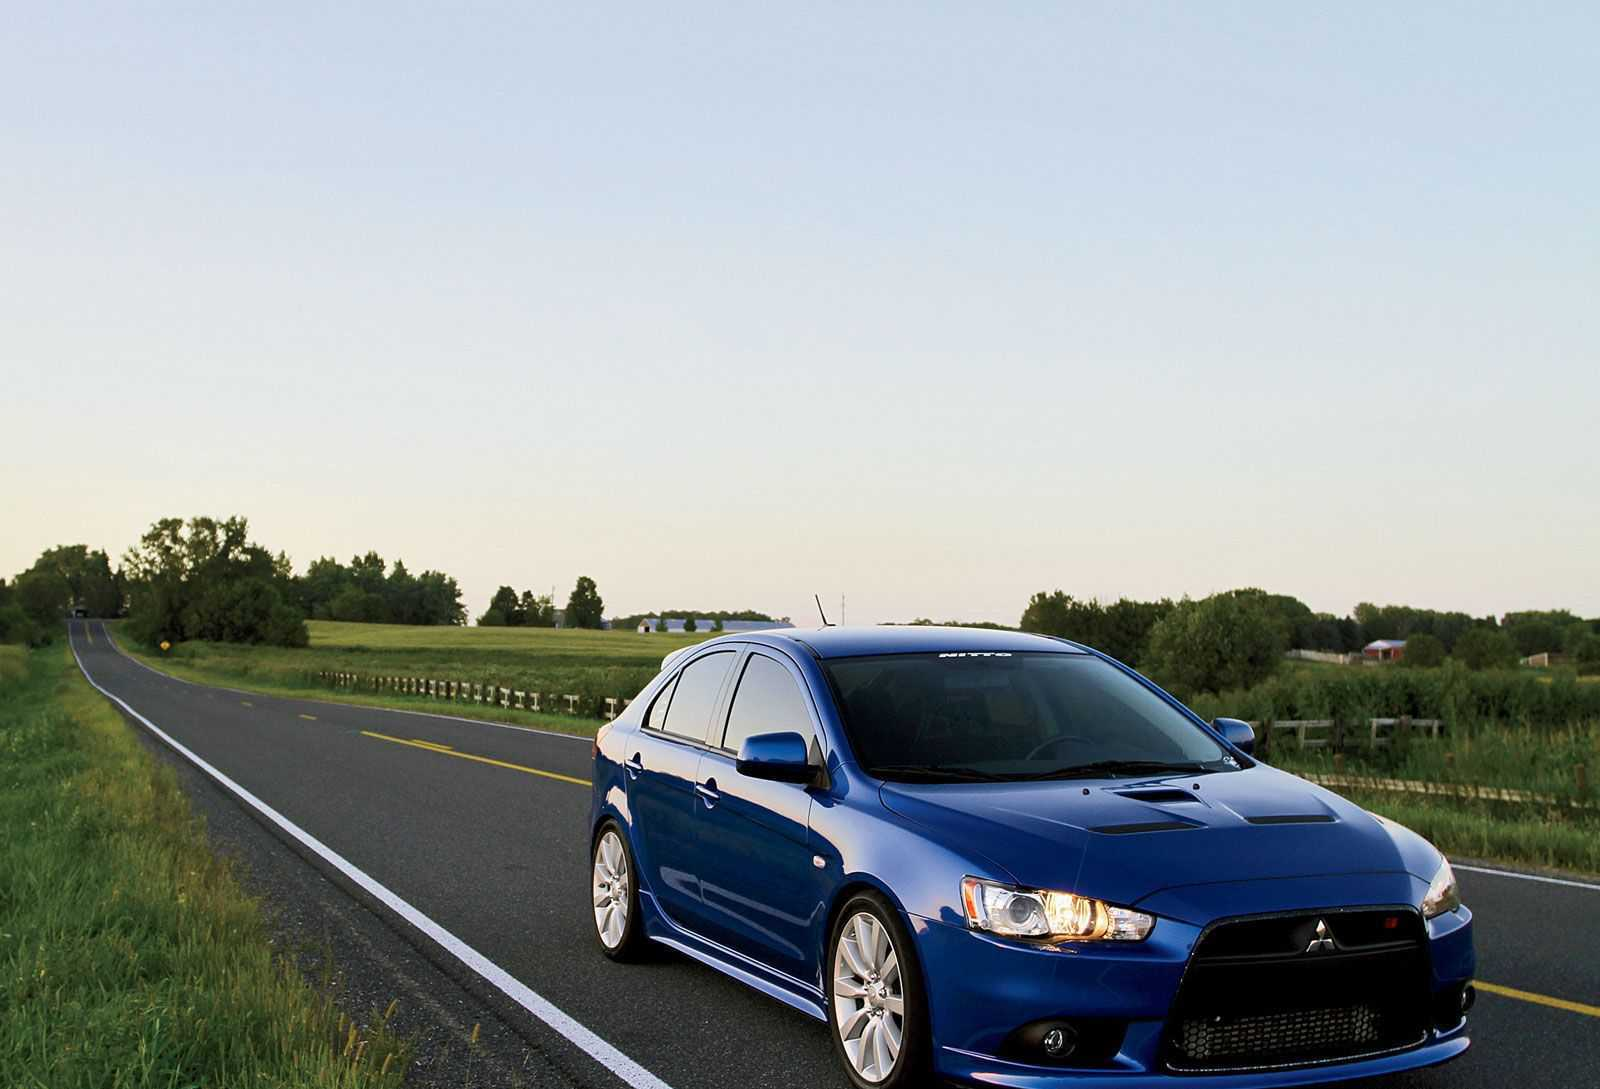 Mitsubishi Lancer Ralliart Modification - Car Modification